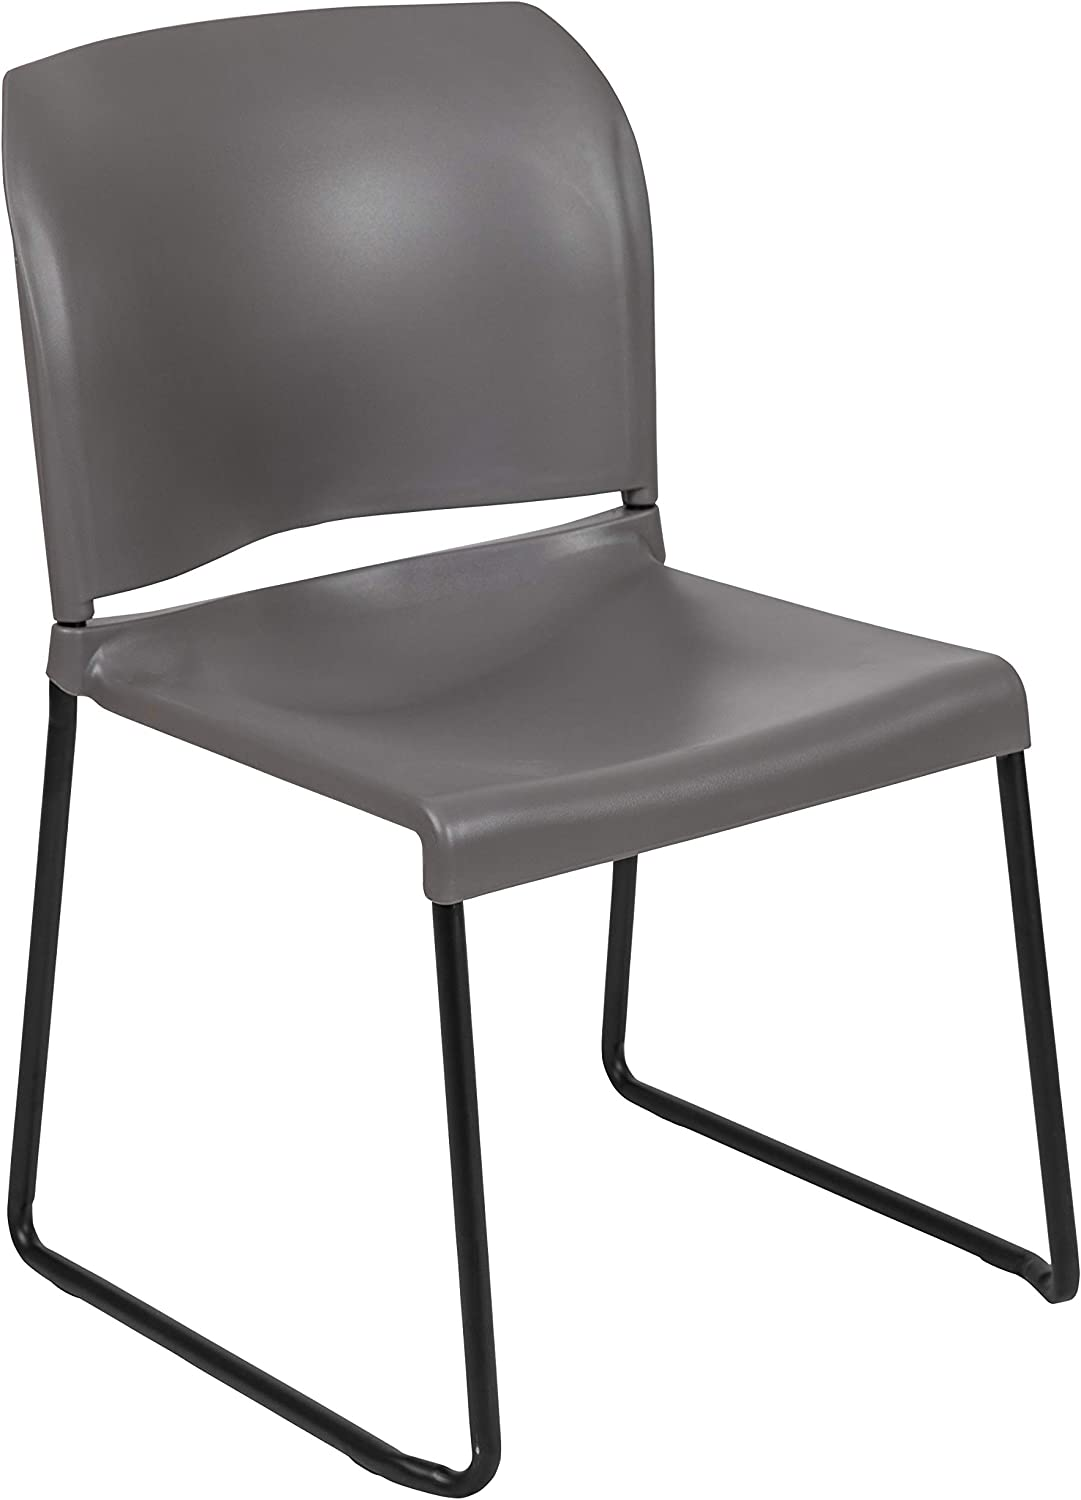 Flash Furniture HERCULES Series 880 lb. Capacity Gray Full Back Contoured Stack Chair with Black Powder Coated Sled Base